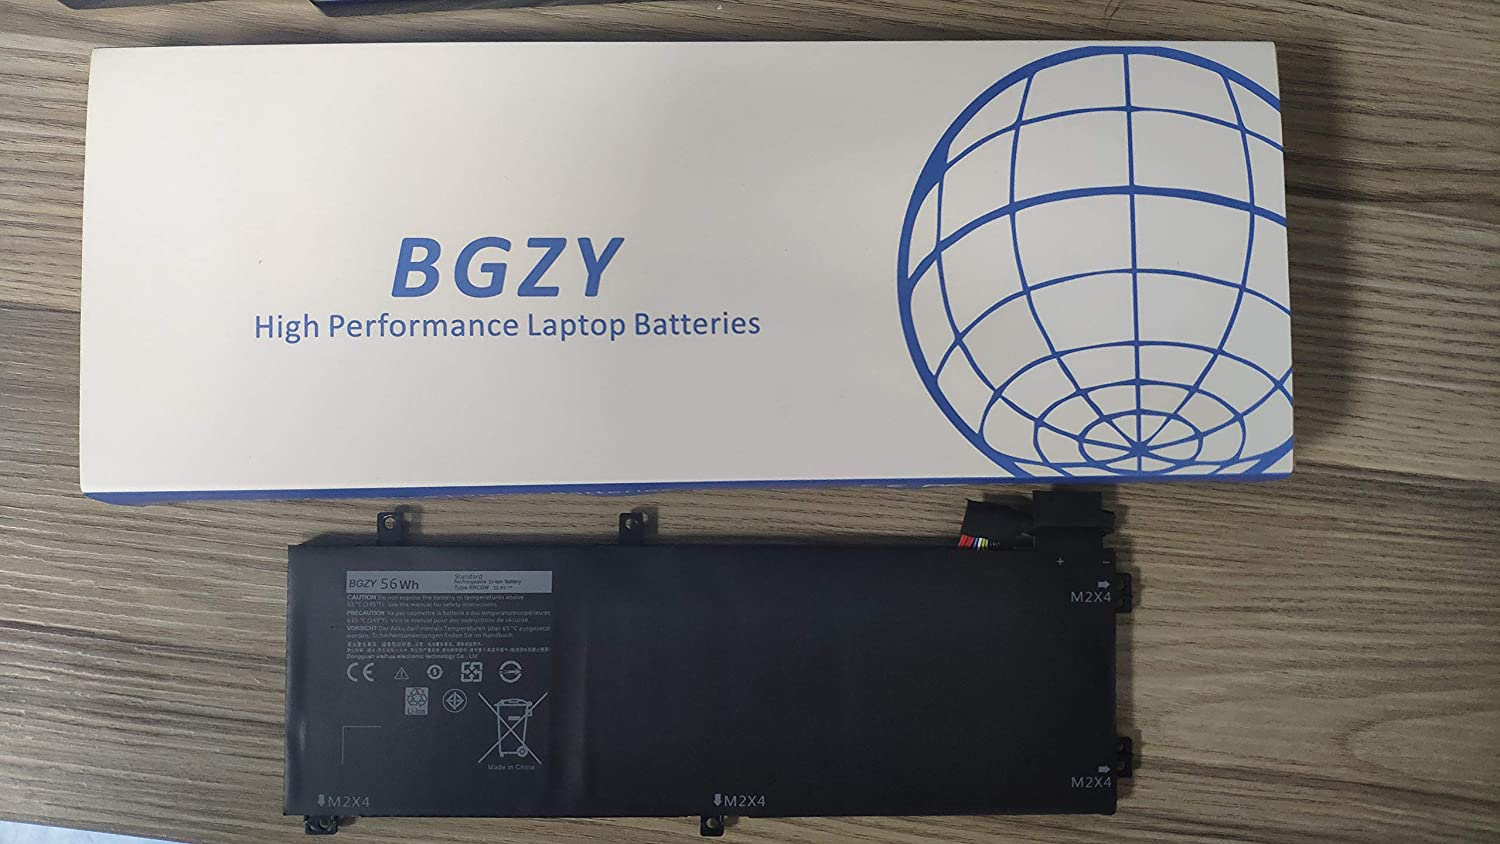 BGZY New RRCGW Replacement Laptop Battery Compatible with Dell XPS 15 9550 Precision 5510 RRCGW M7R96 62MJV (11.4V 56Wh)